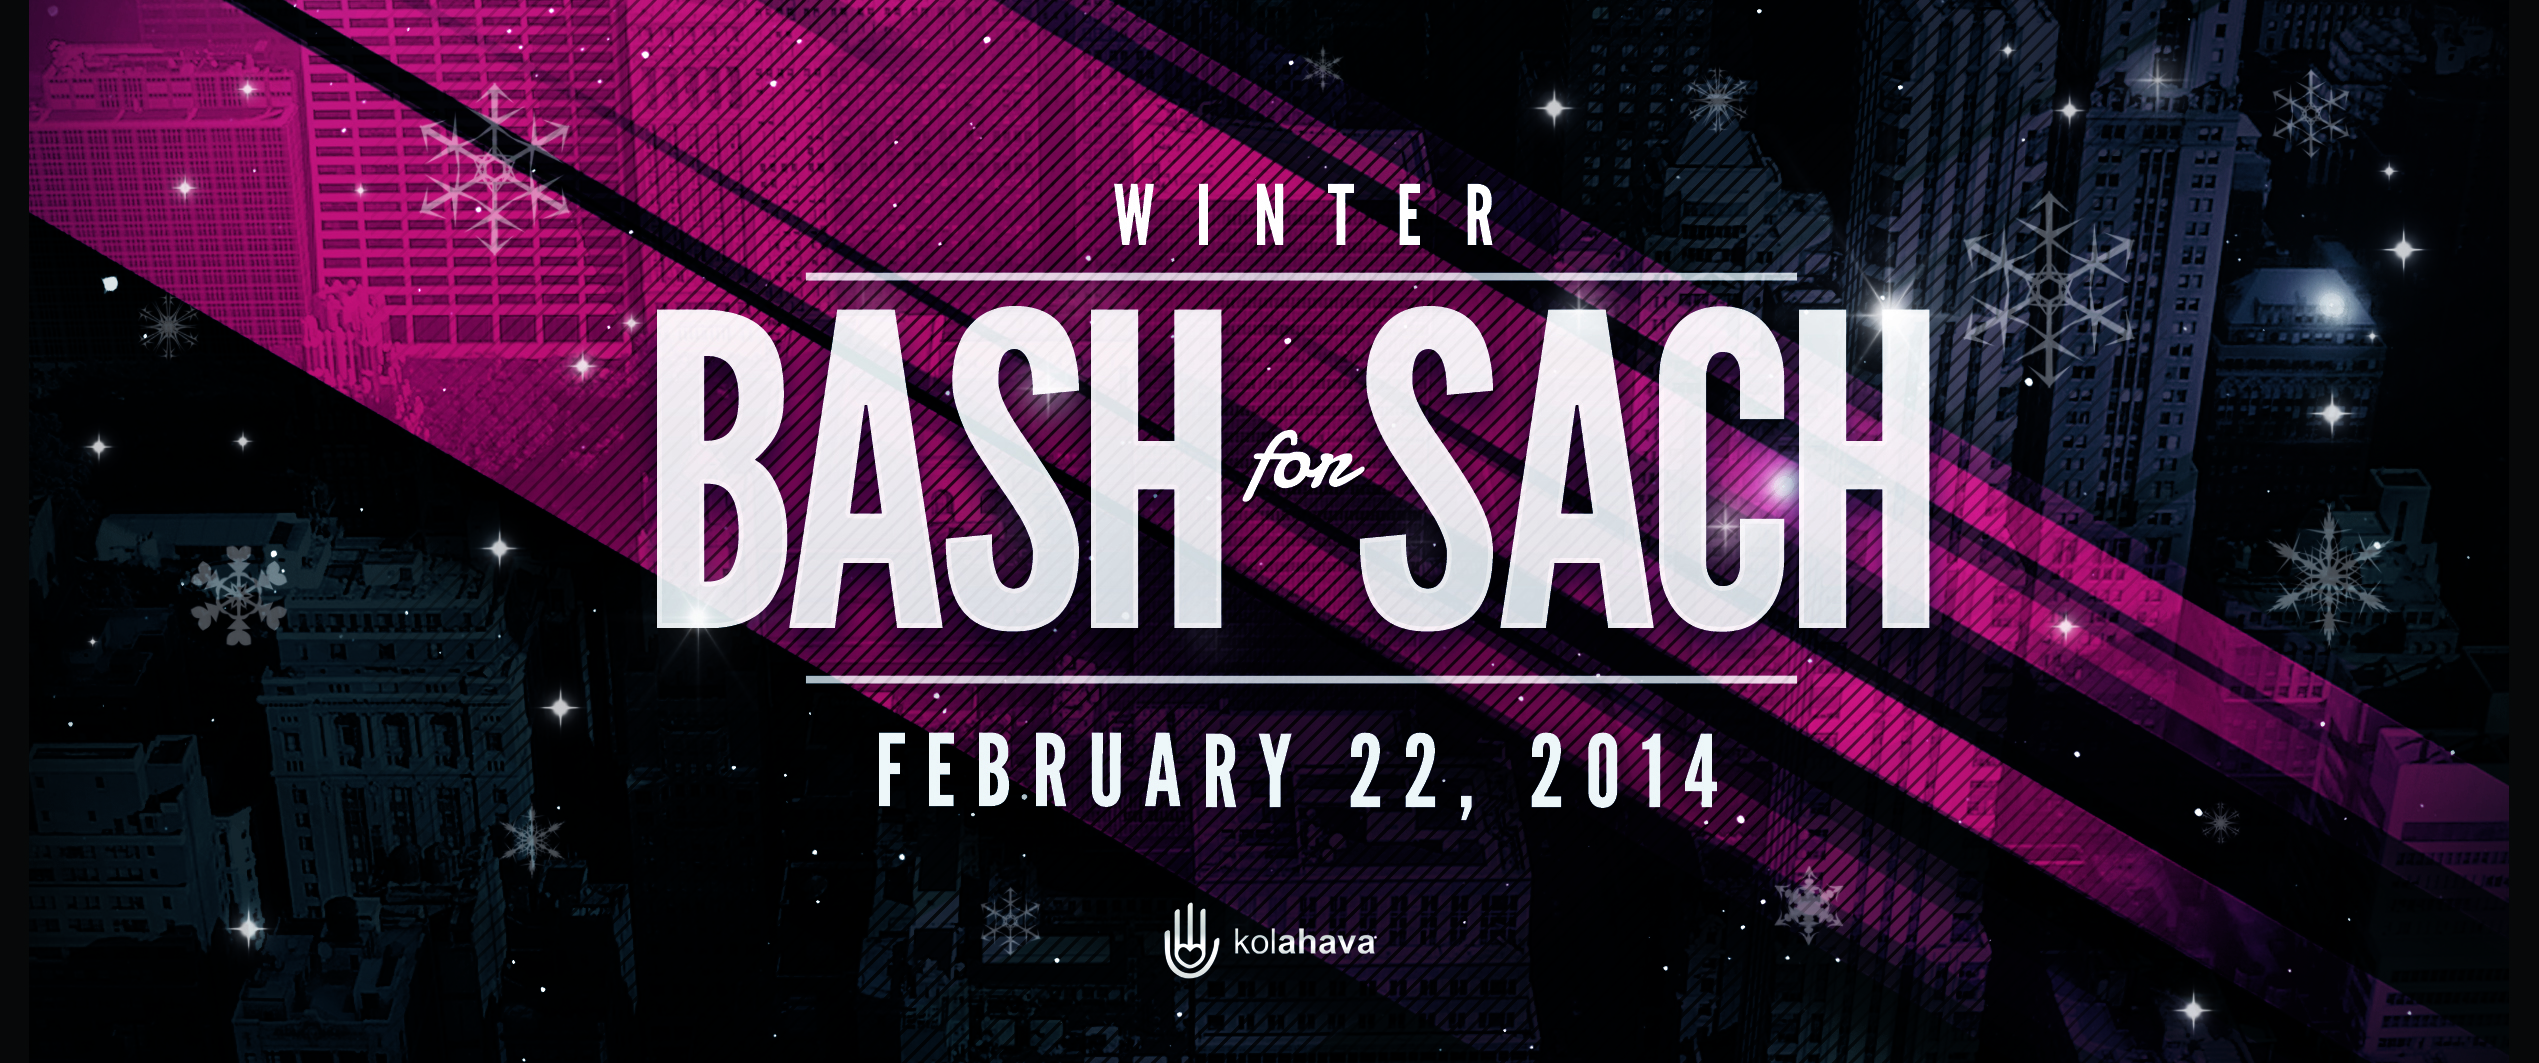 Kol Ahava's Winter Bash For SACH